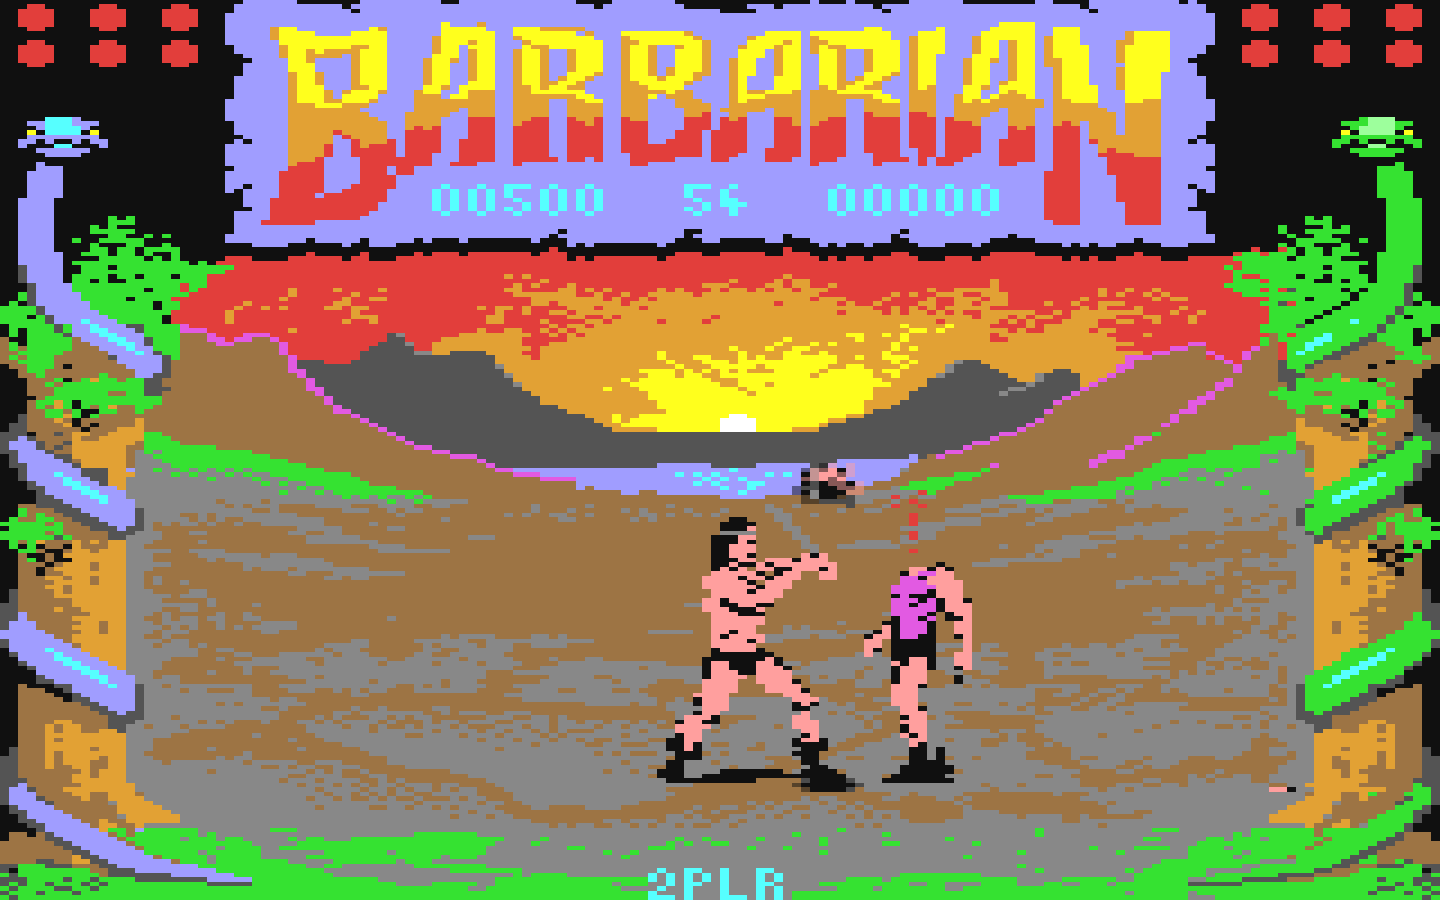 Screenshot from: Barbarian game